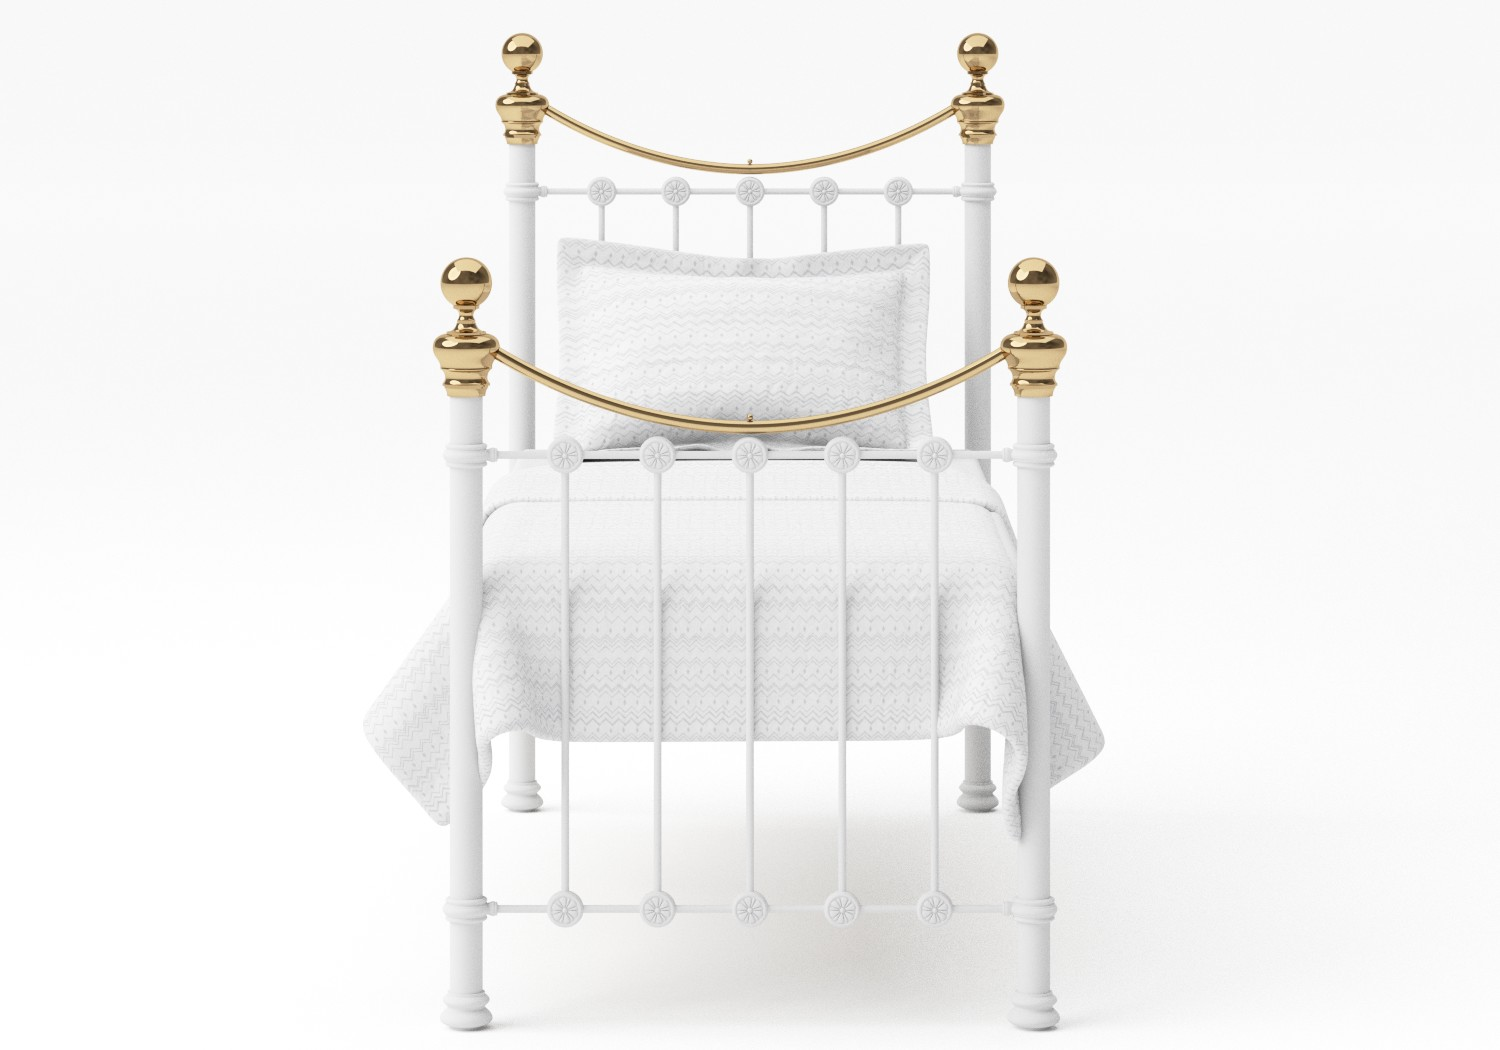 Selkirk Single Iron/Metal Bed in Satin White with Brass details